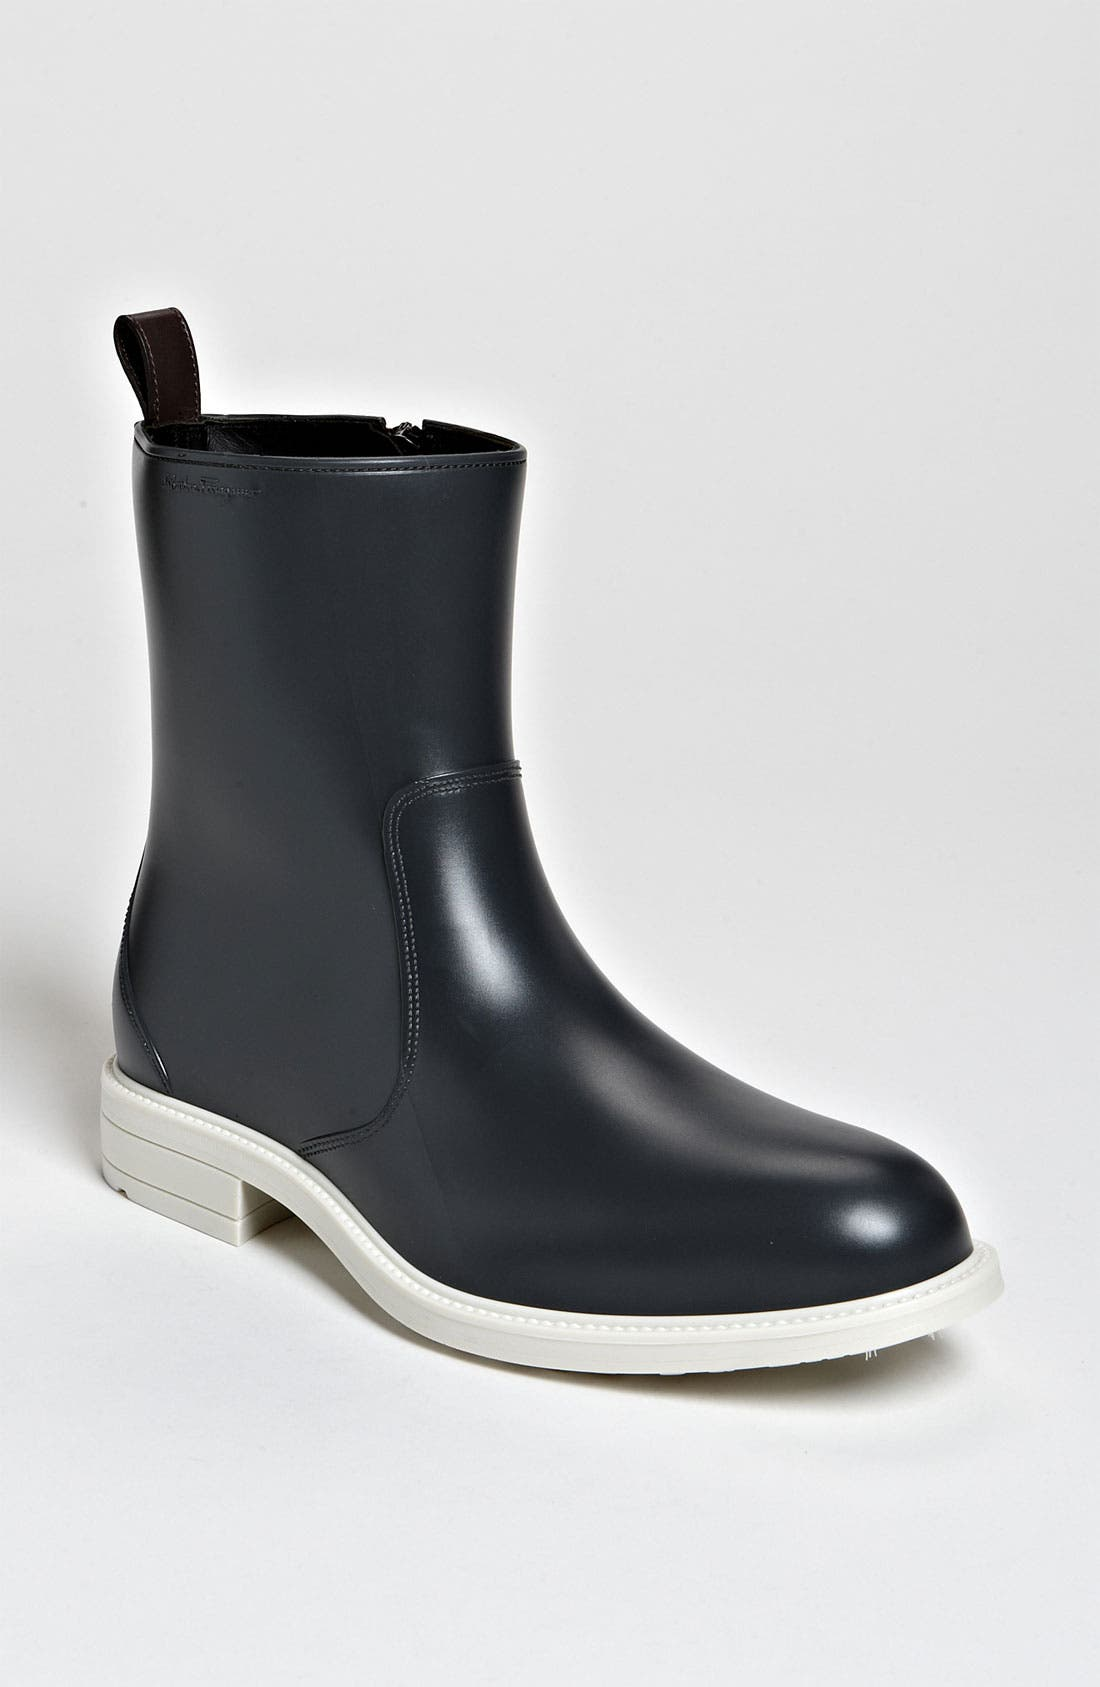 Alternate Image 1 Selected - Salvatore Ferragamo 'Baltimora' Rain Boot